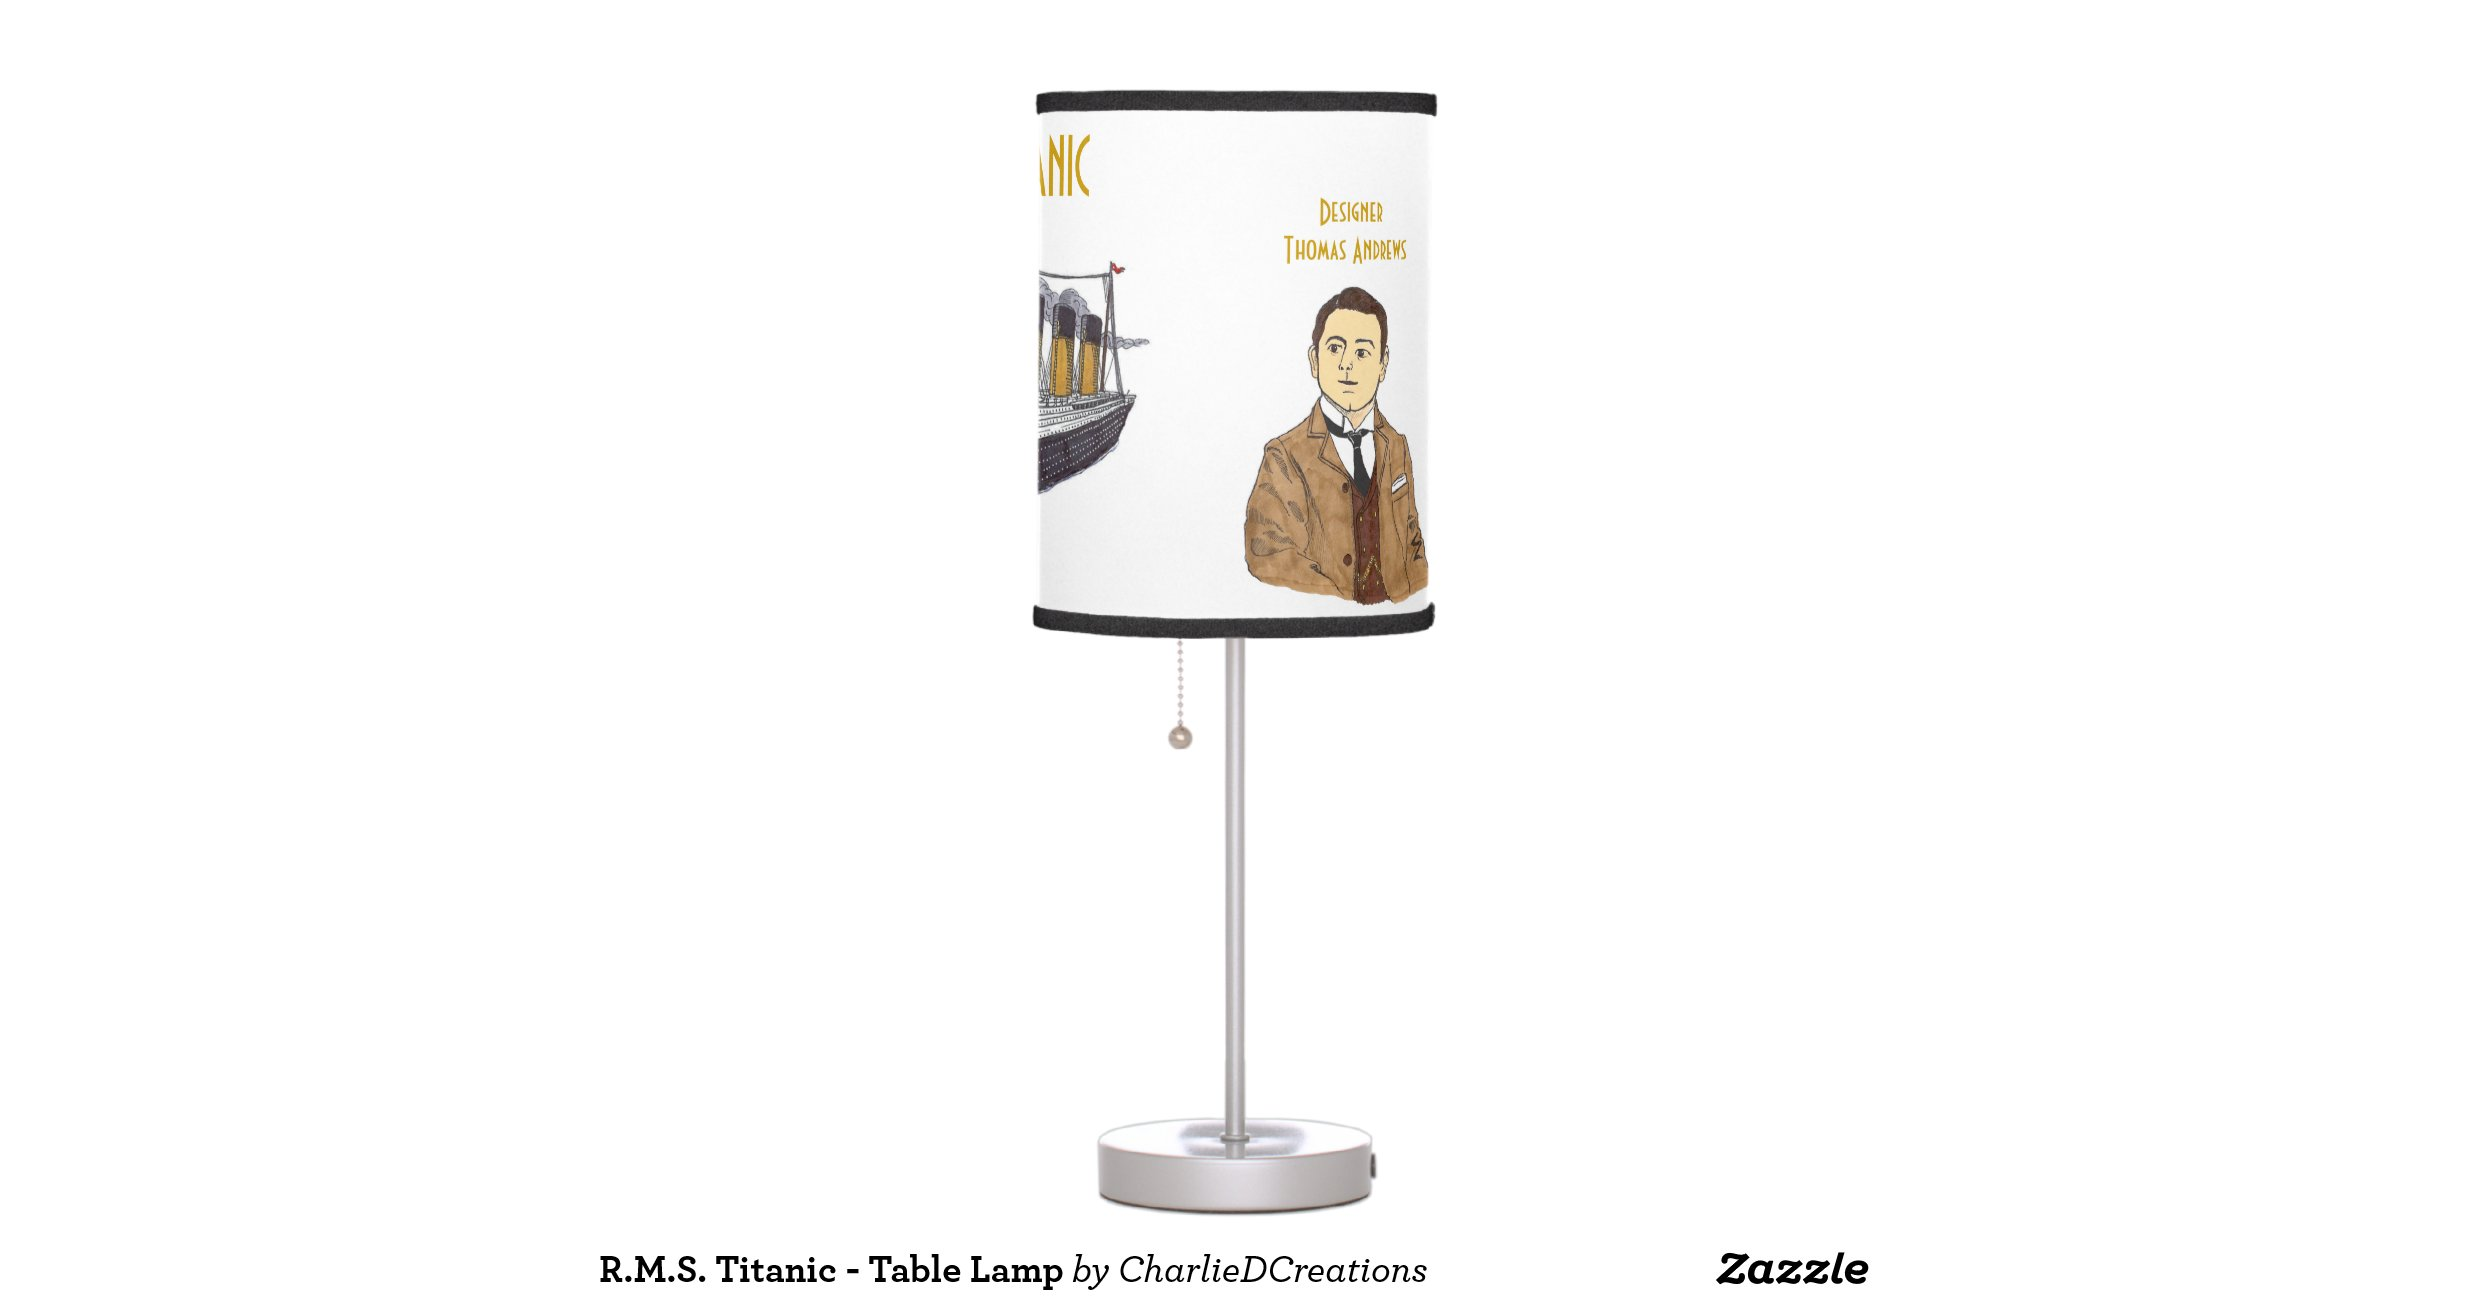 r m s titanic table lamp r9b58bb82eaf145fcbd850a6915164f3b With lamp table b and m